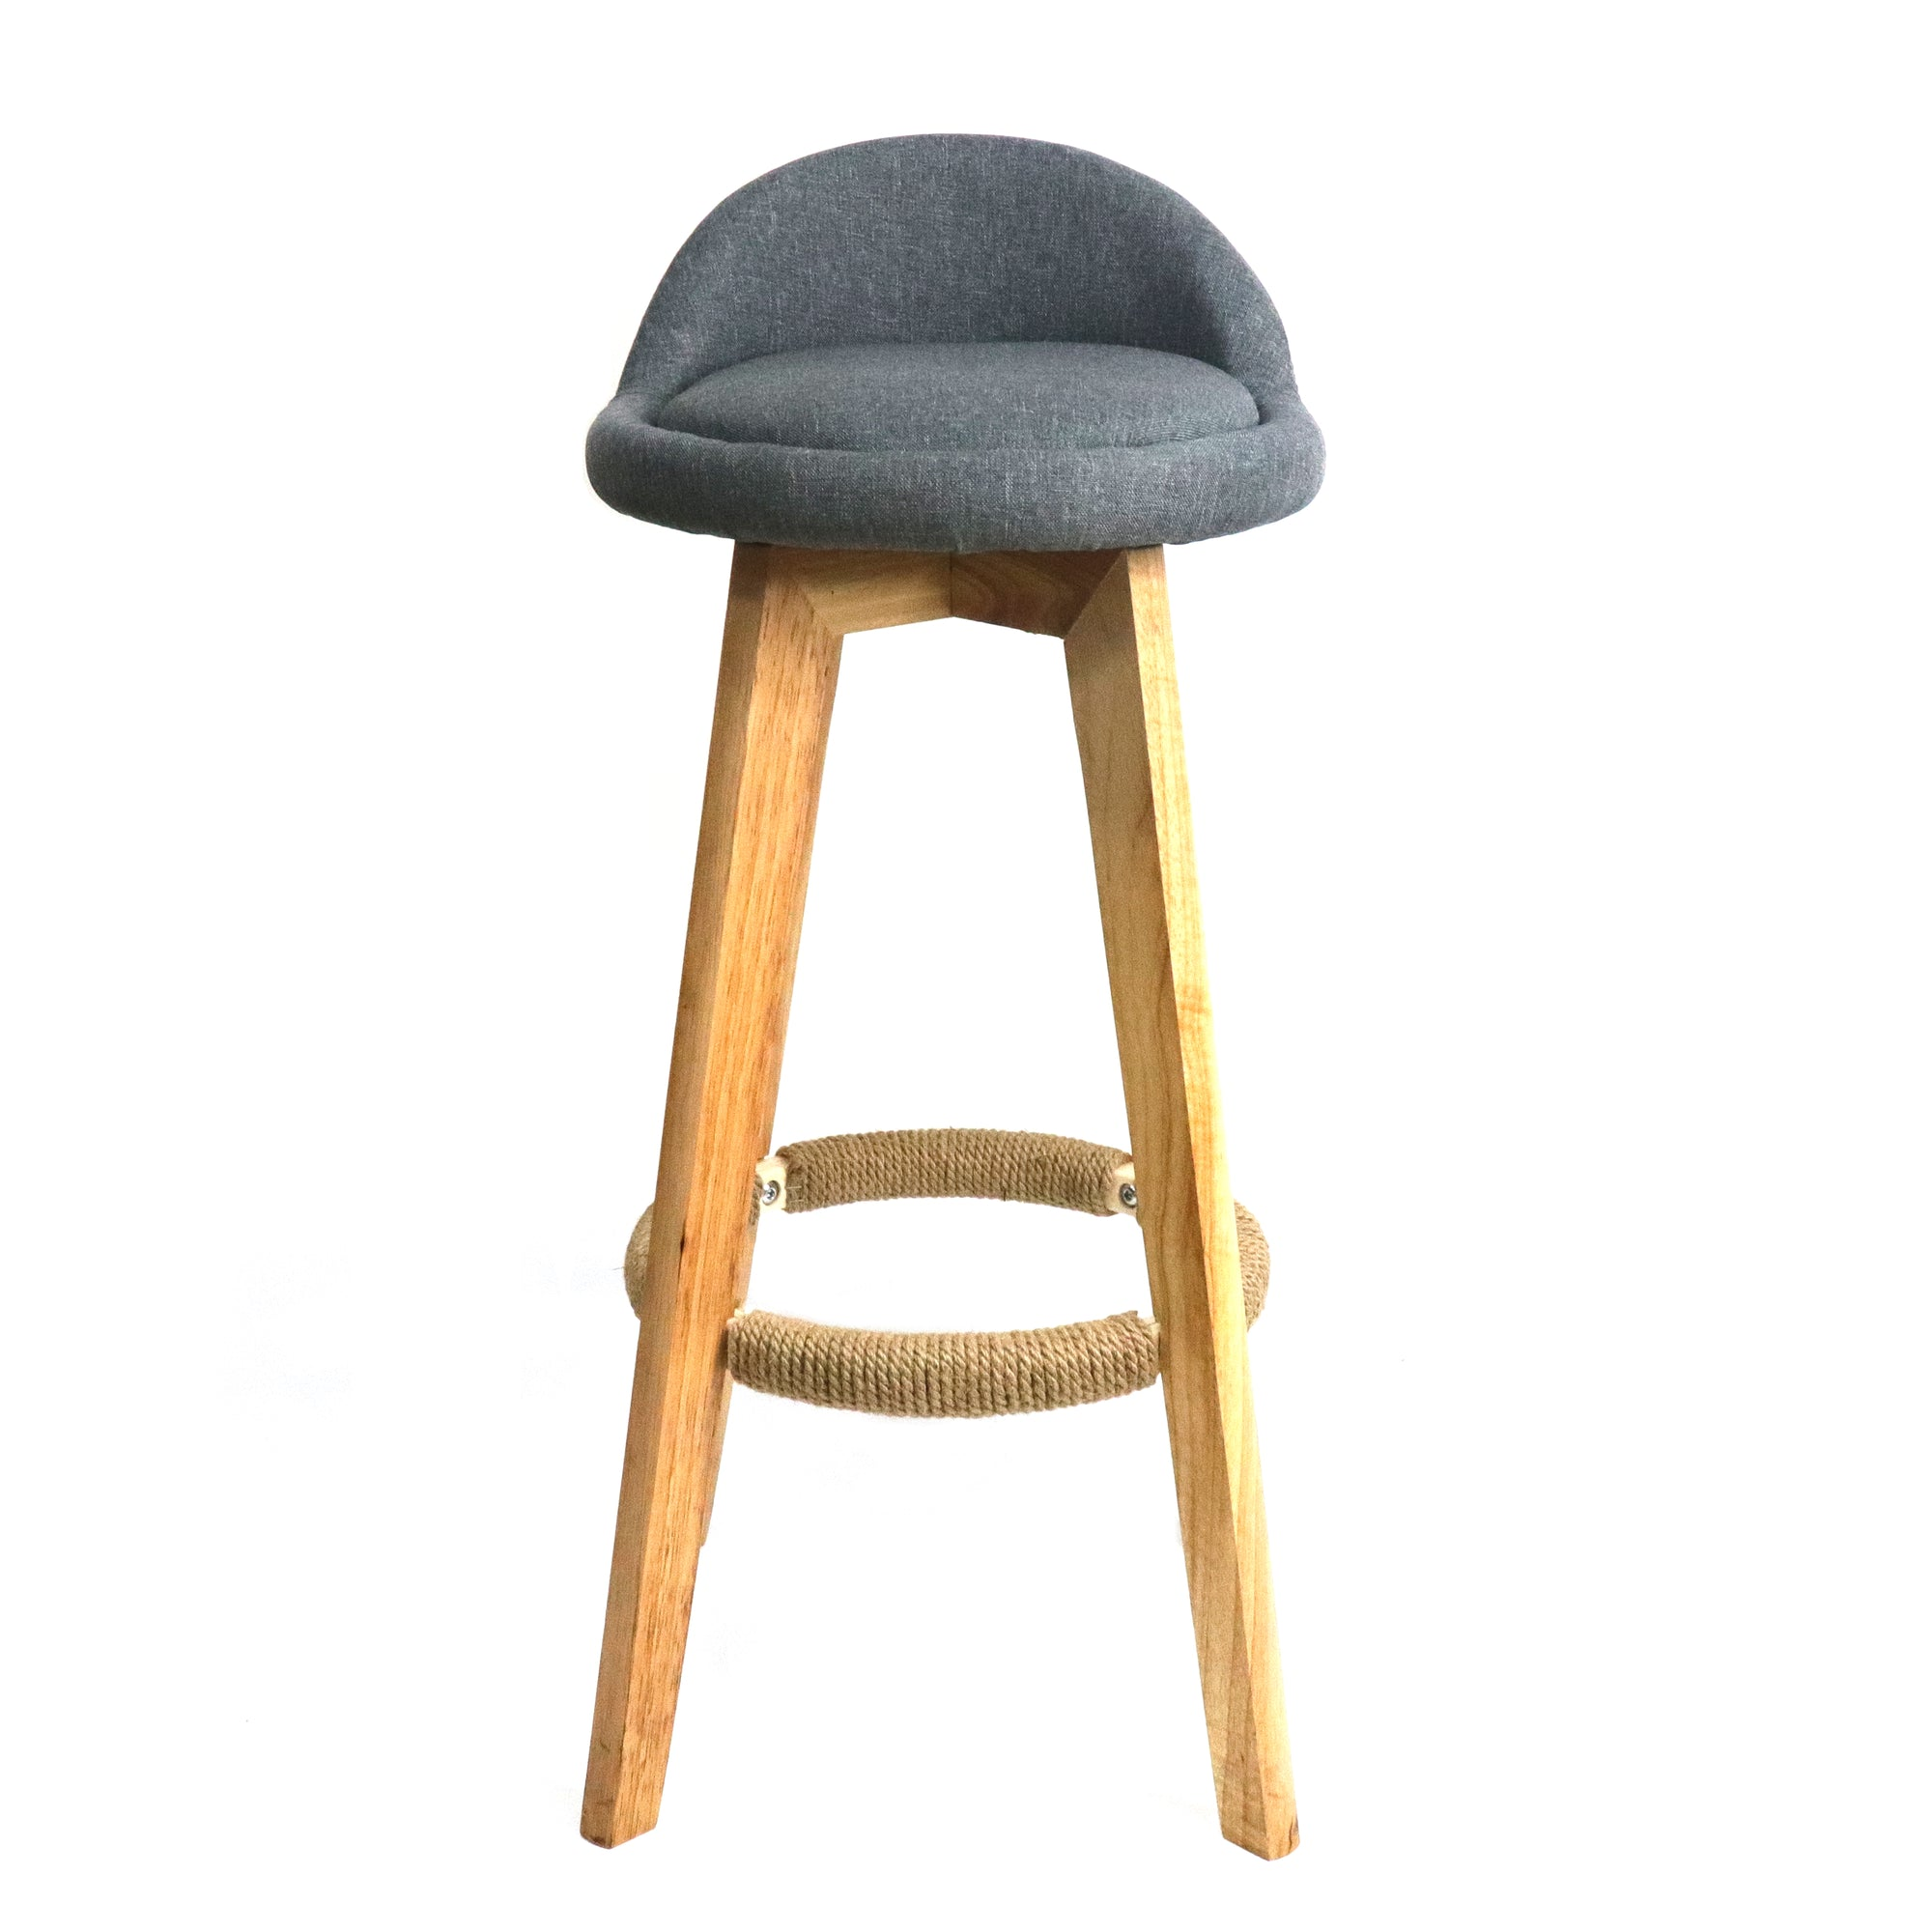 Snug kitchen bench height stool - decorstore